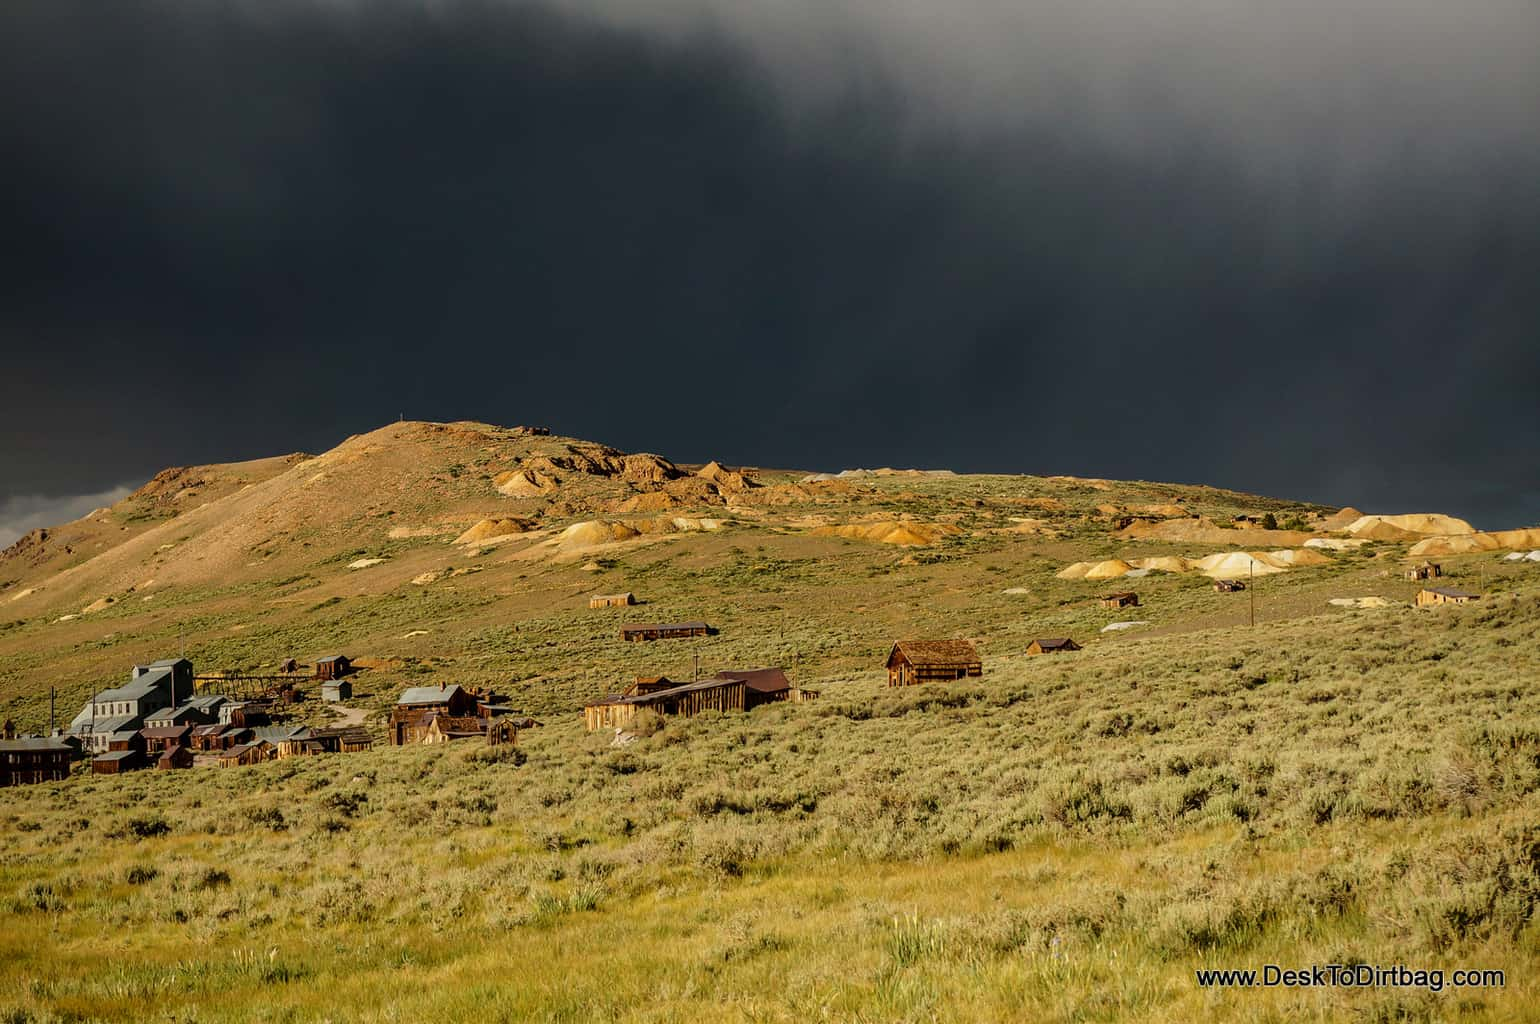 A storm rises over Bodie, California, a small ghost town located in the hills of the Sierra Nevadas.